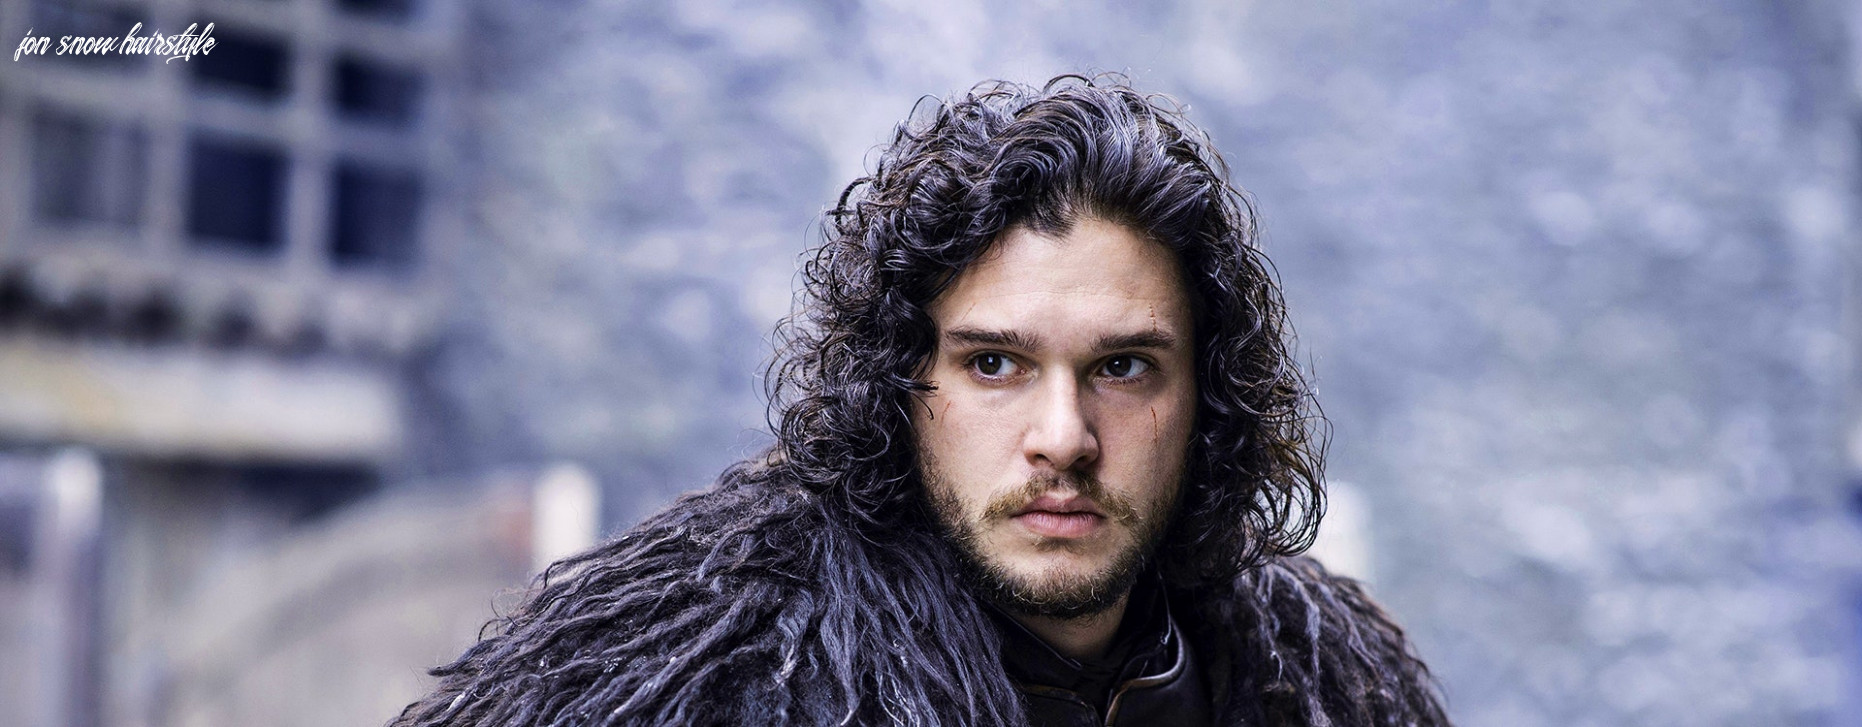 How to Get Jon Snow's Luscious Hair | GQ